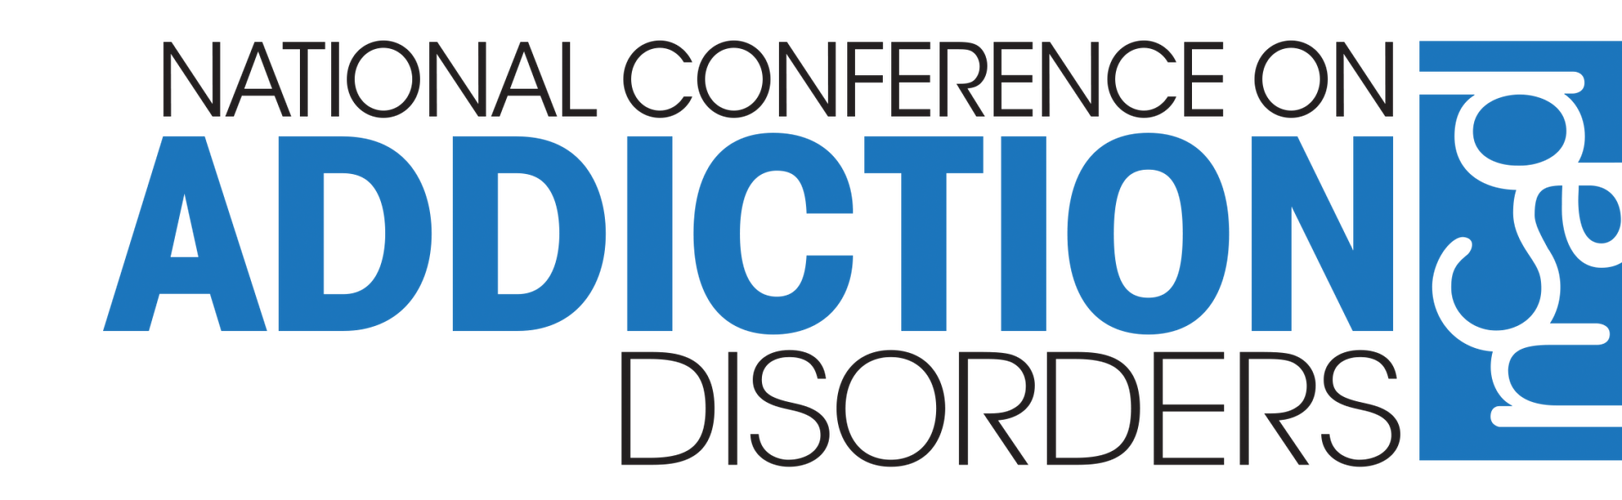 National Conference on Addiction Disorders